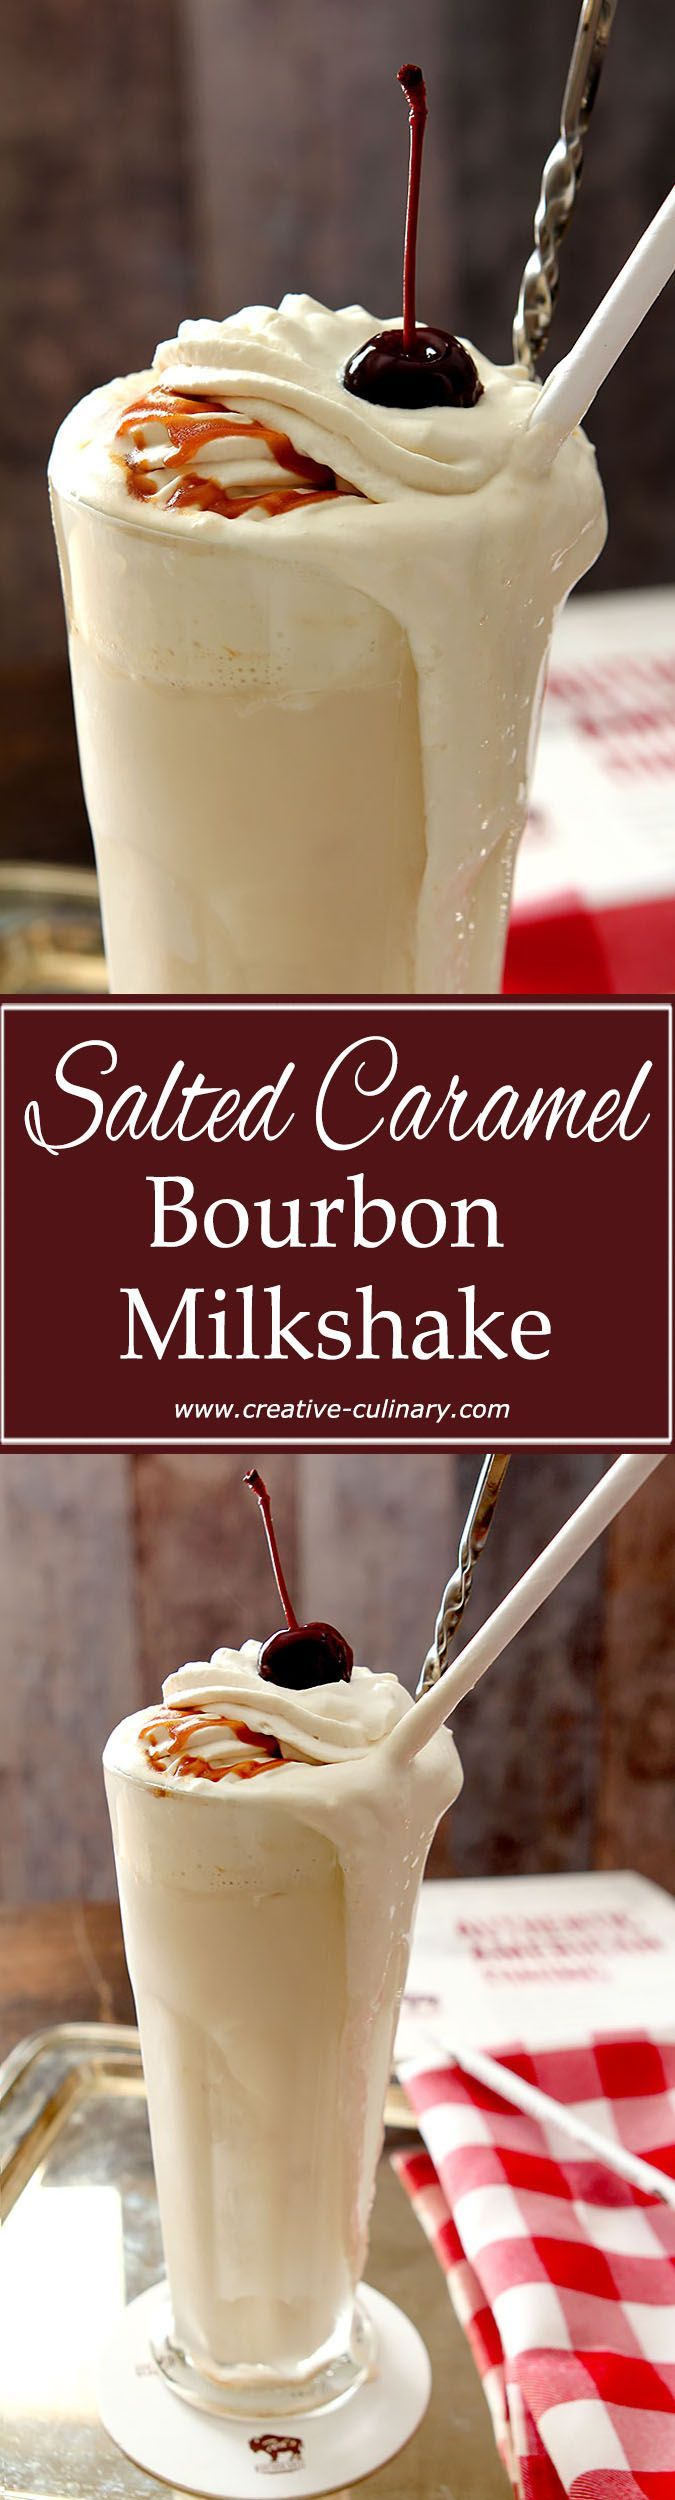 This Salted Caramel Bourbon Milkshake is a specialty at Ted's Montana Grill….